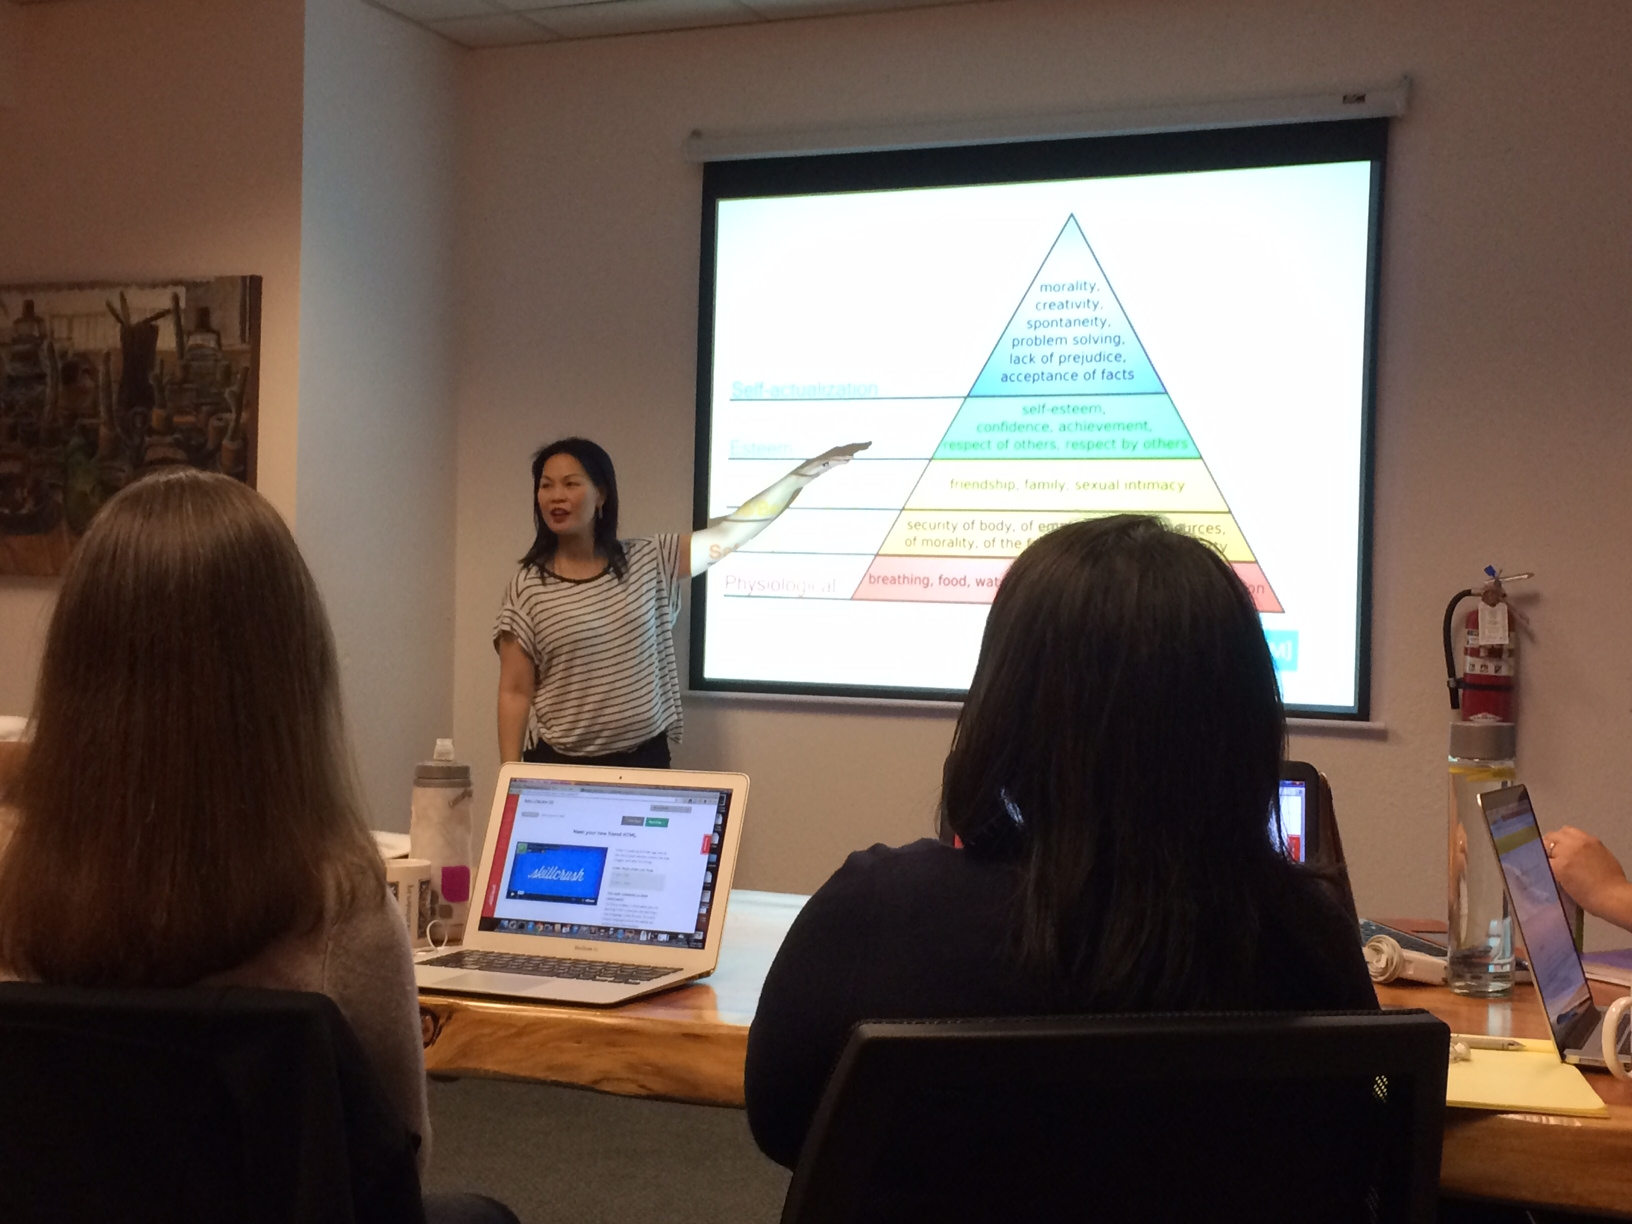 (Why, yes, that is a picture of Maslow's Hierarchy of Needs on the slide.)